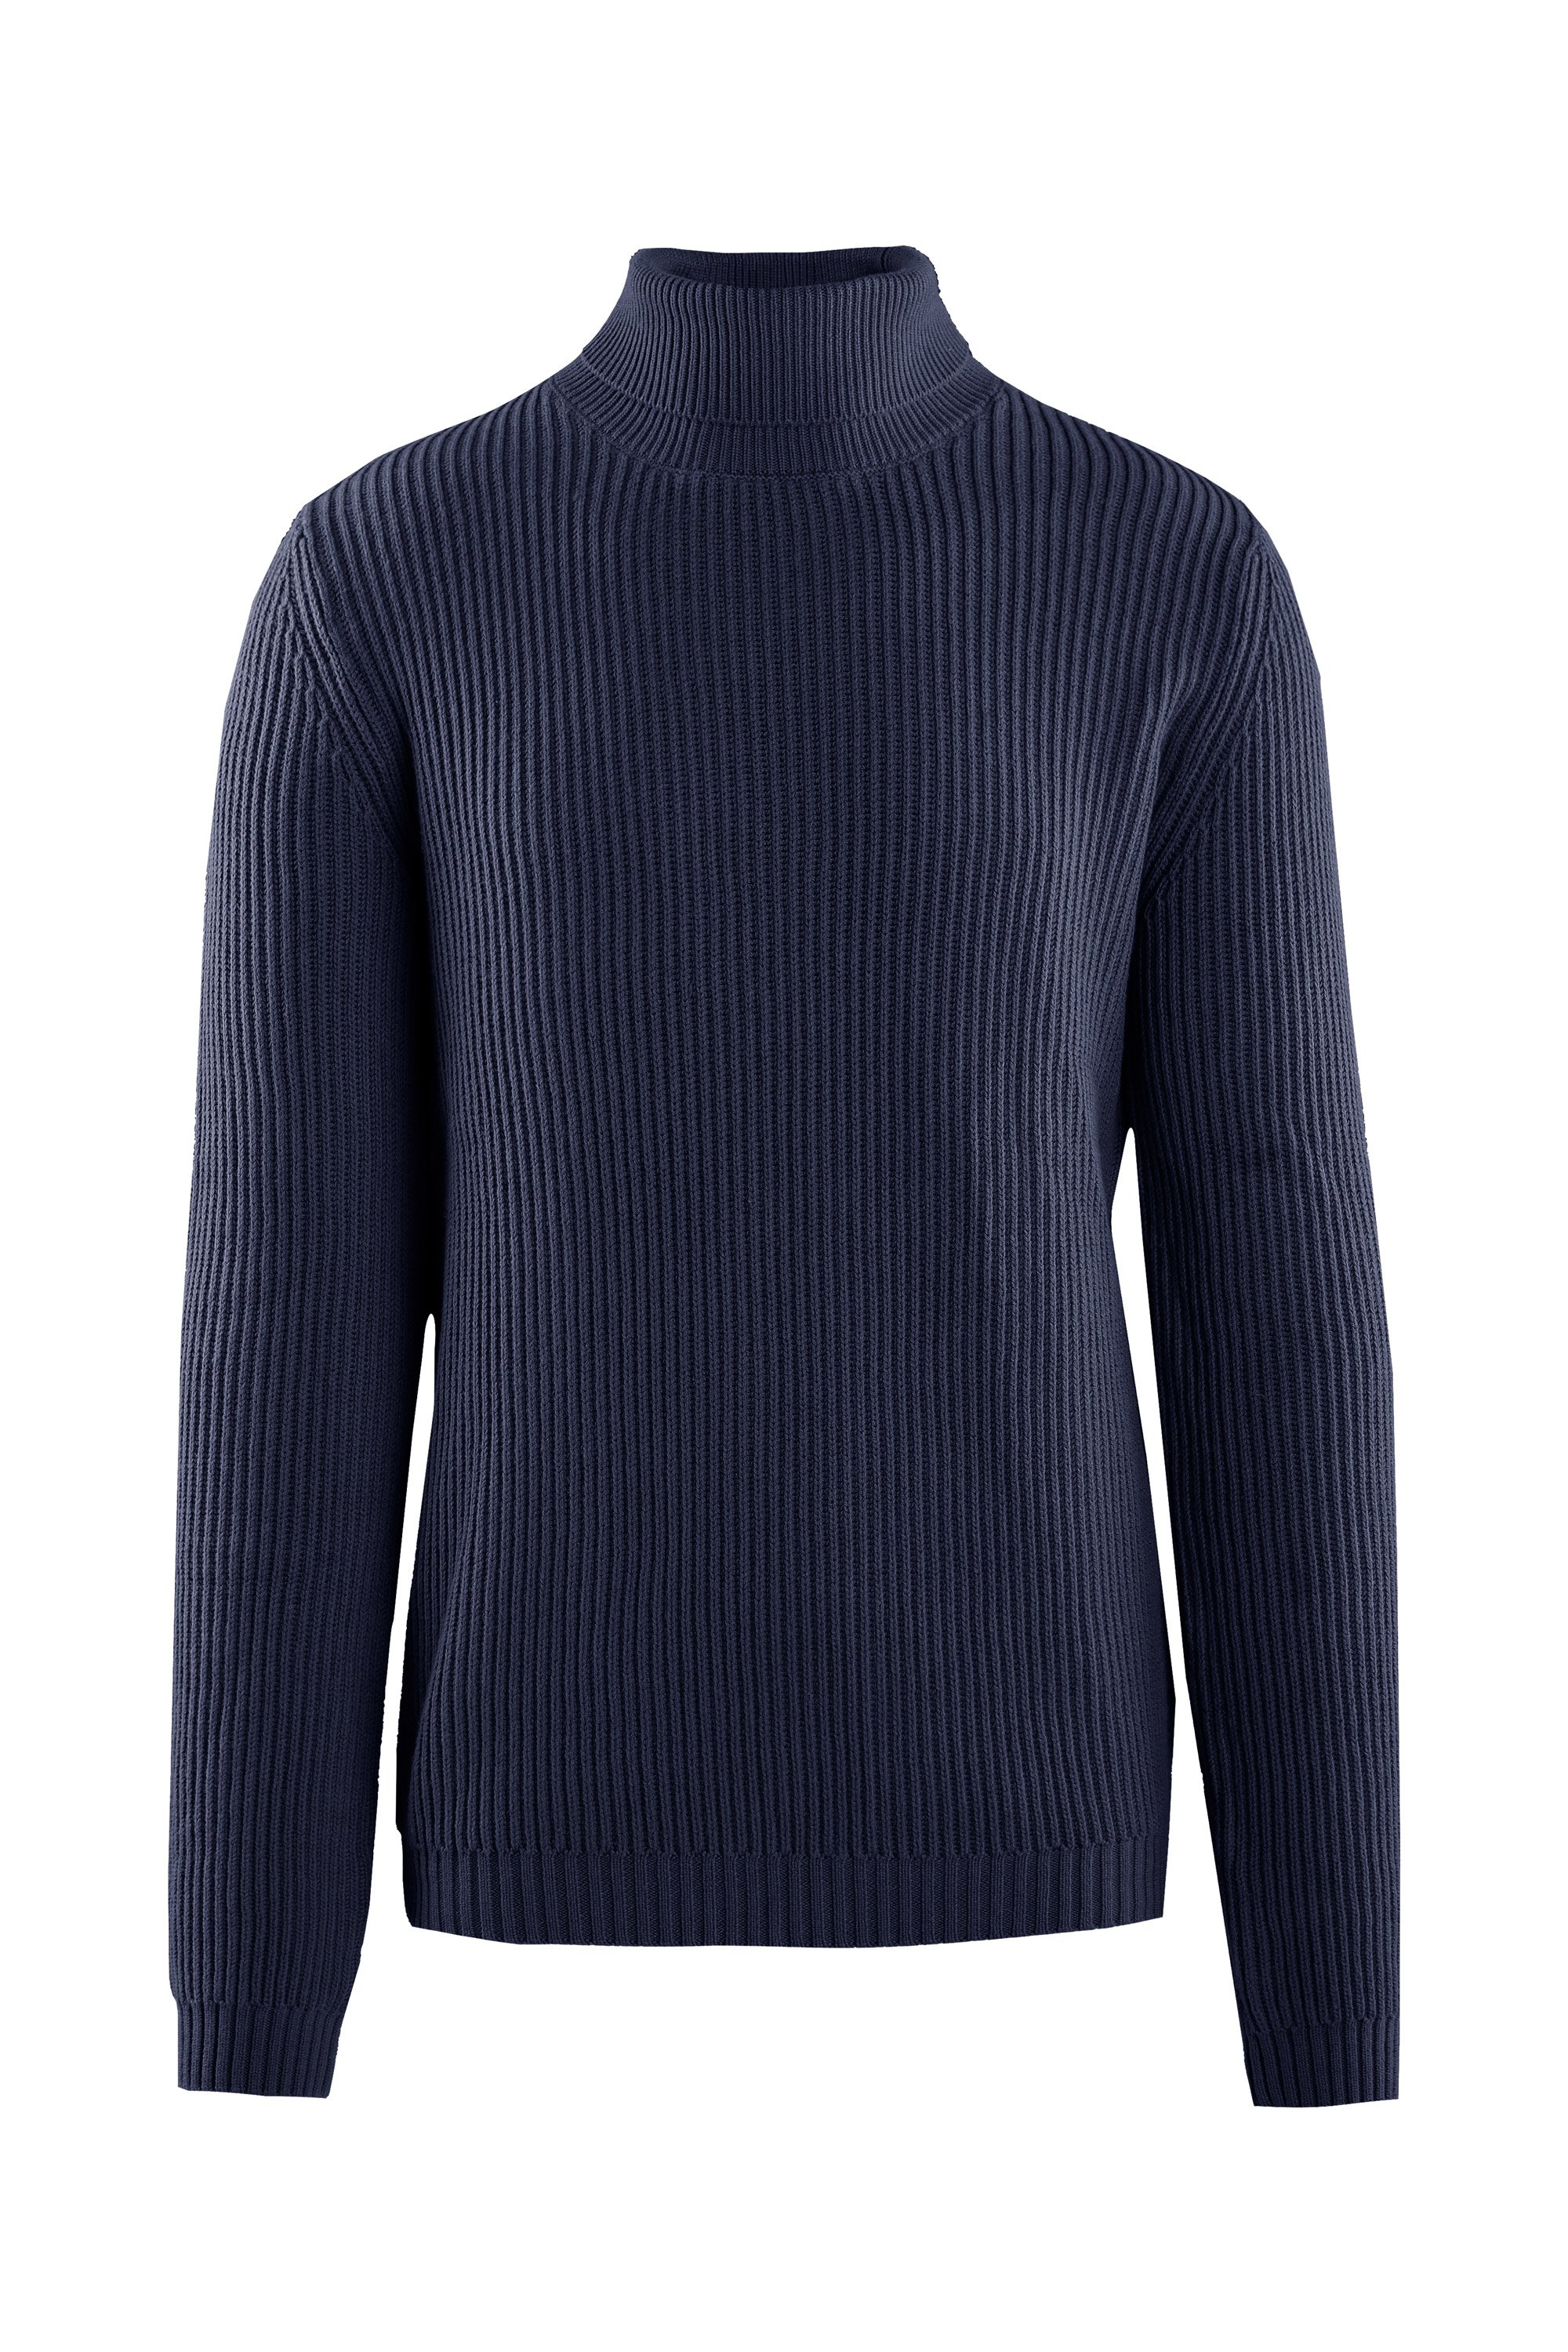 Ribbed turtleneck cotton blend